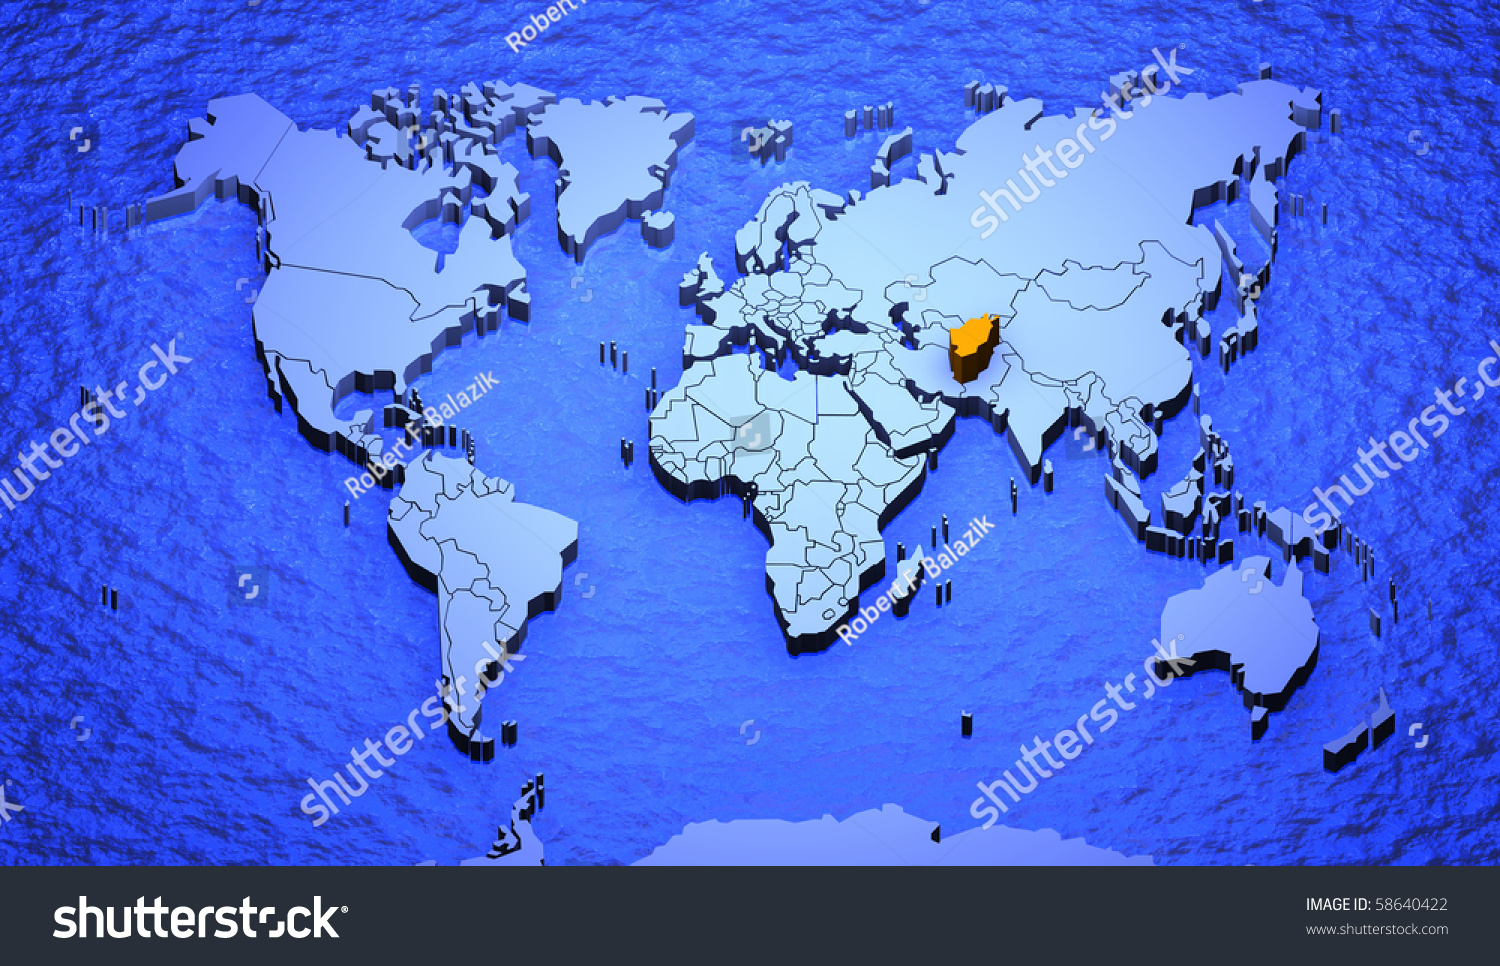 3d graphic depicting world map highlighting stock illustration 3d graphic depicting a world map highlighting afghanistan gumiabroncs Images